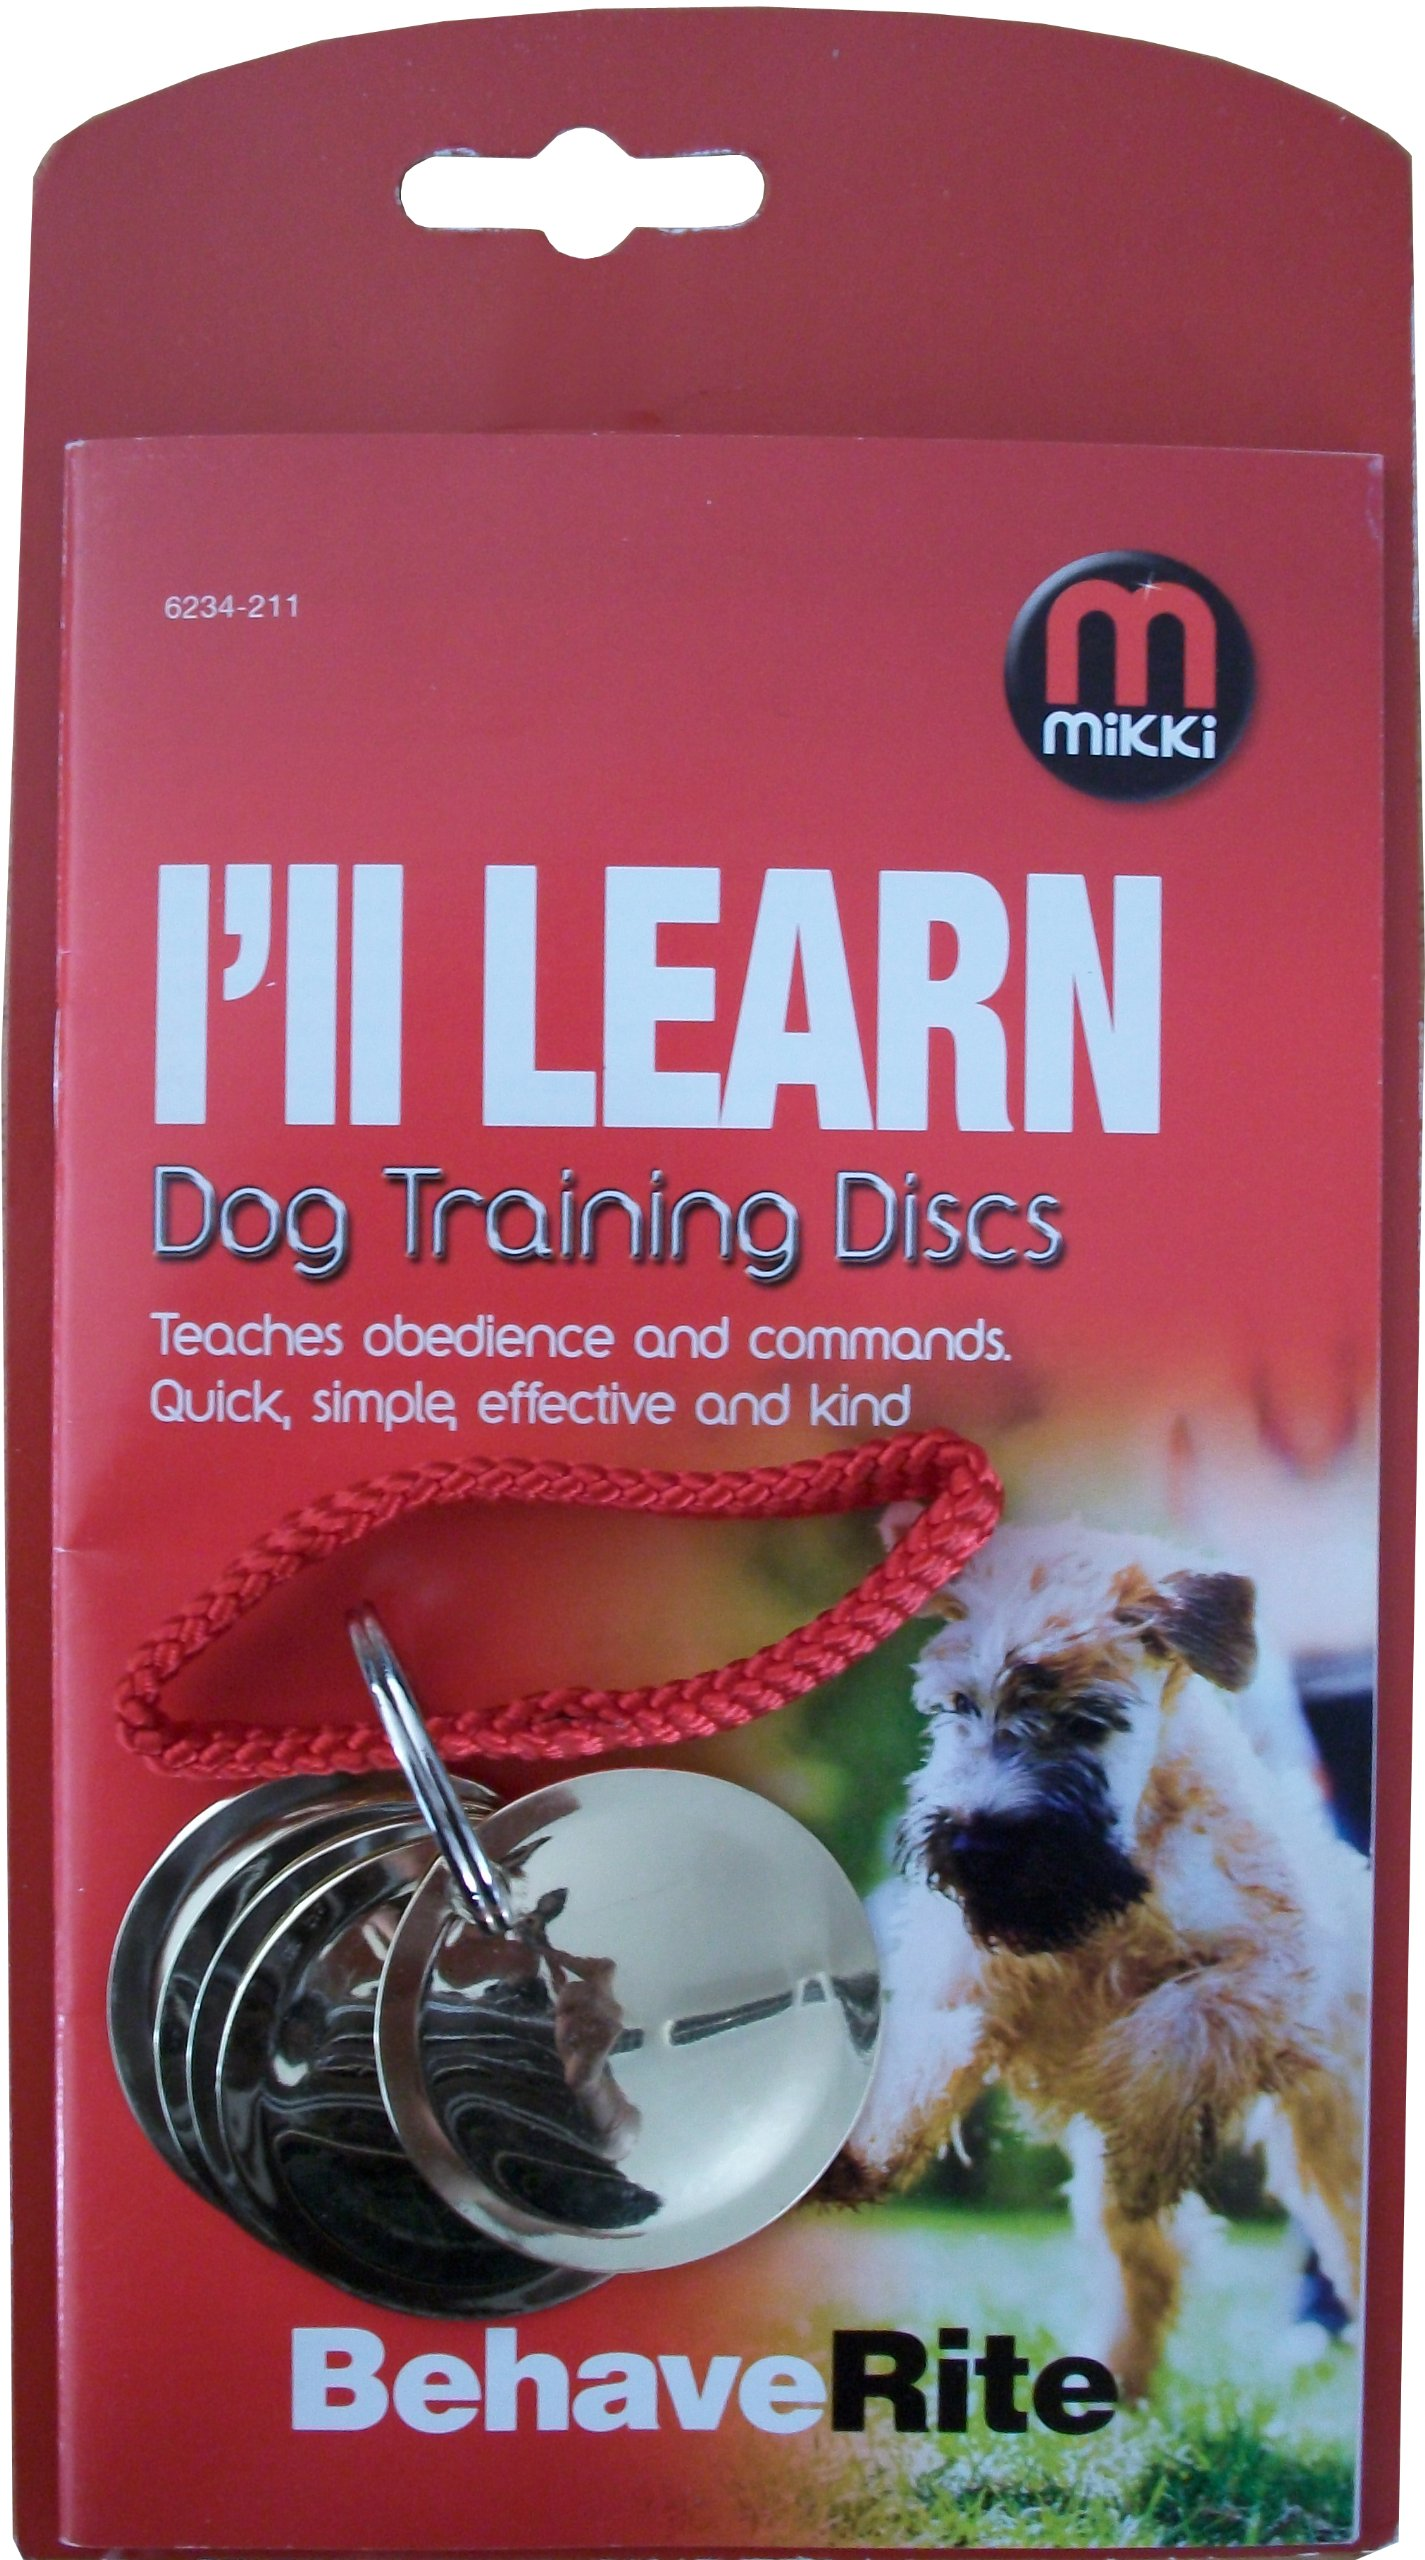 Mikki Dog Puppy Training Discs for Obedience, Commands, Recall, Agility, Includes Training Guide by Mikki